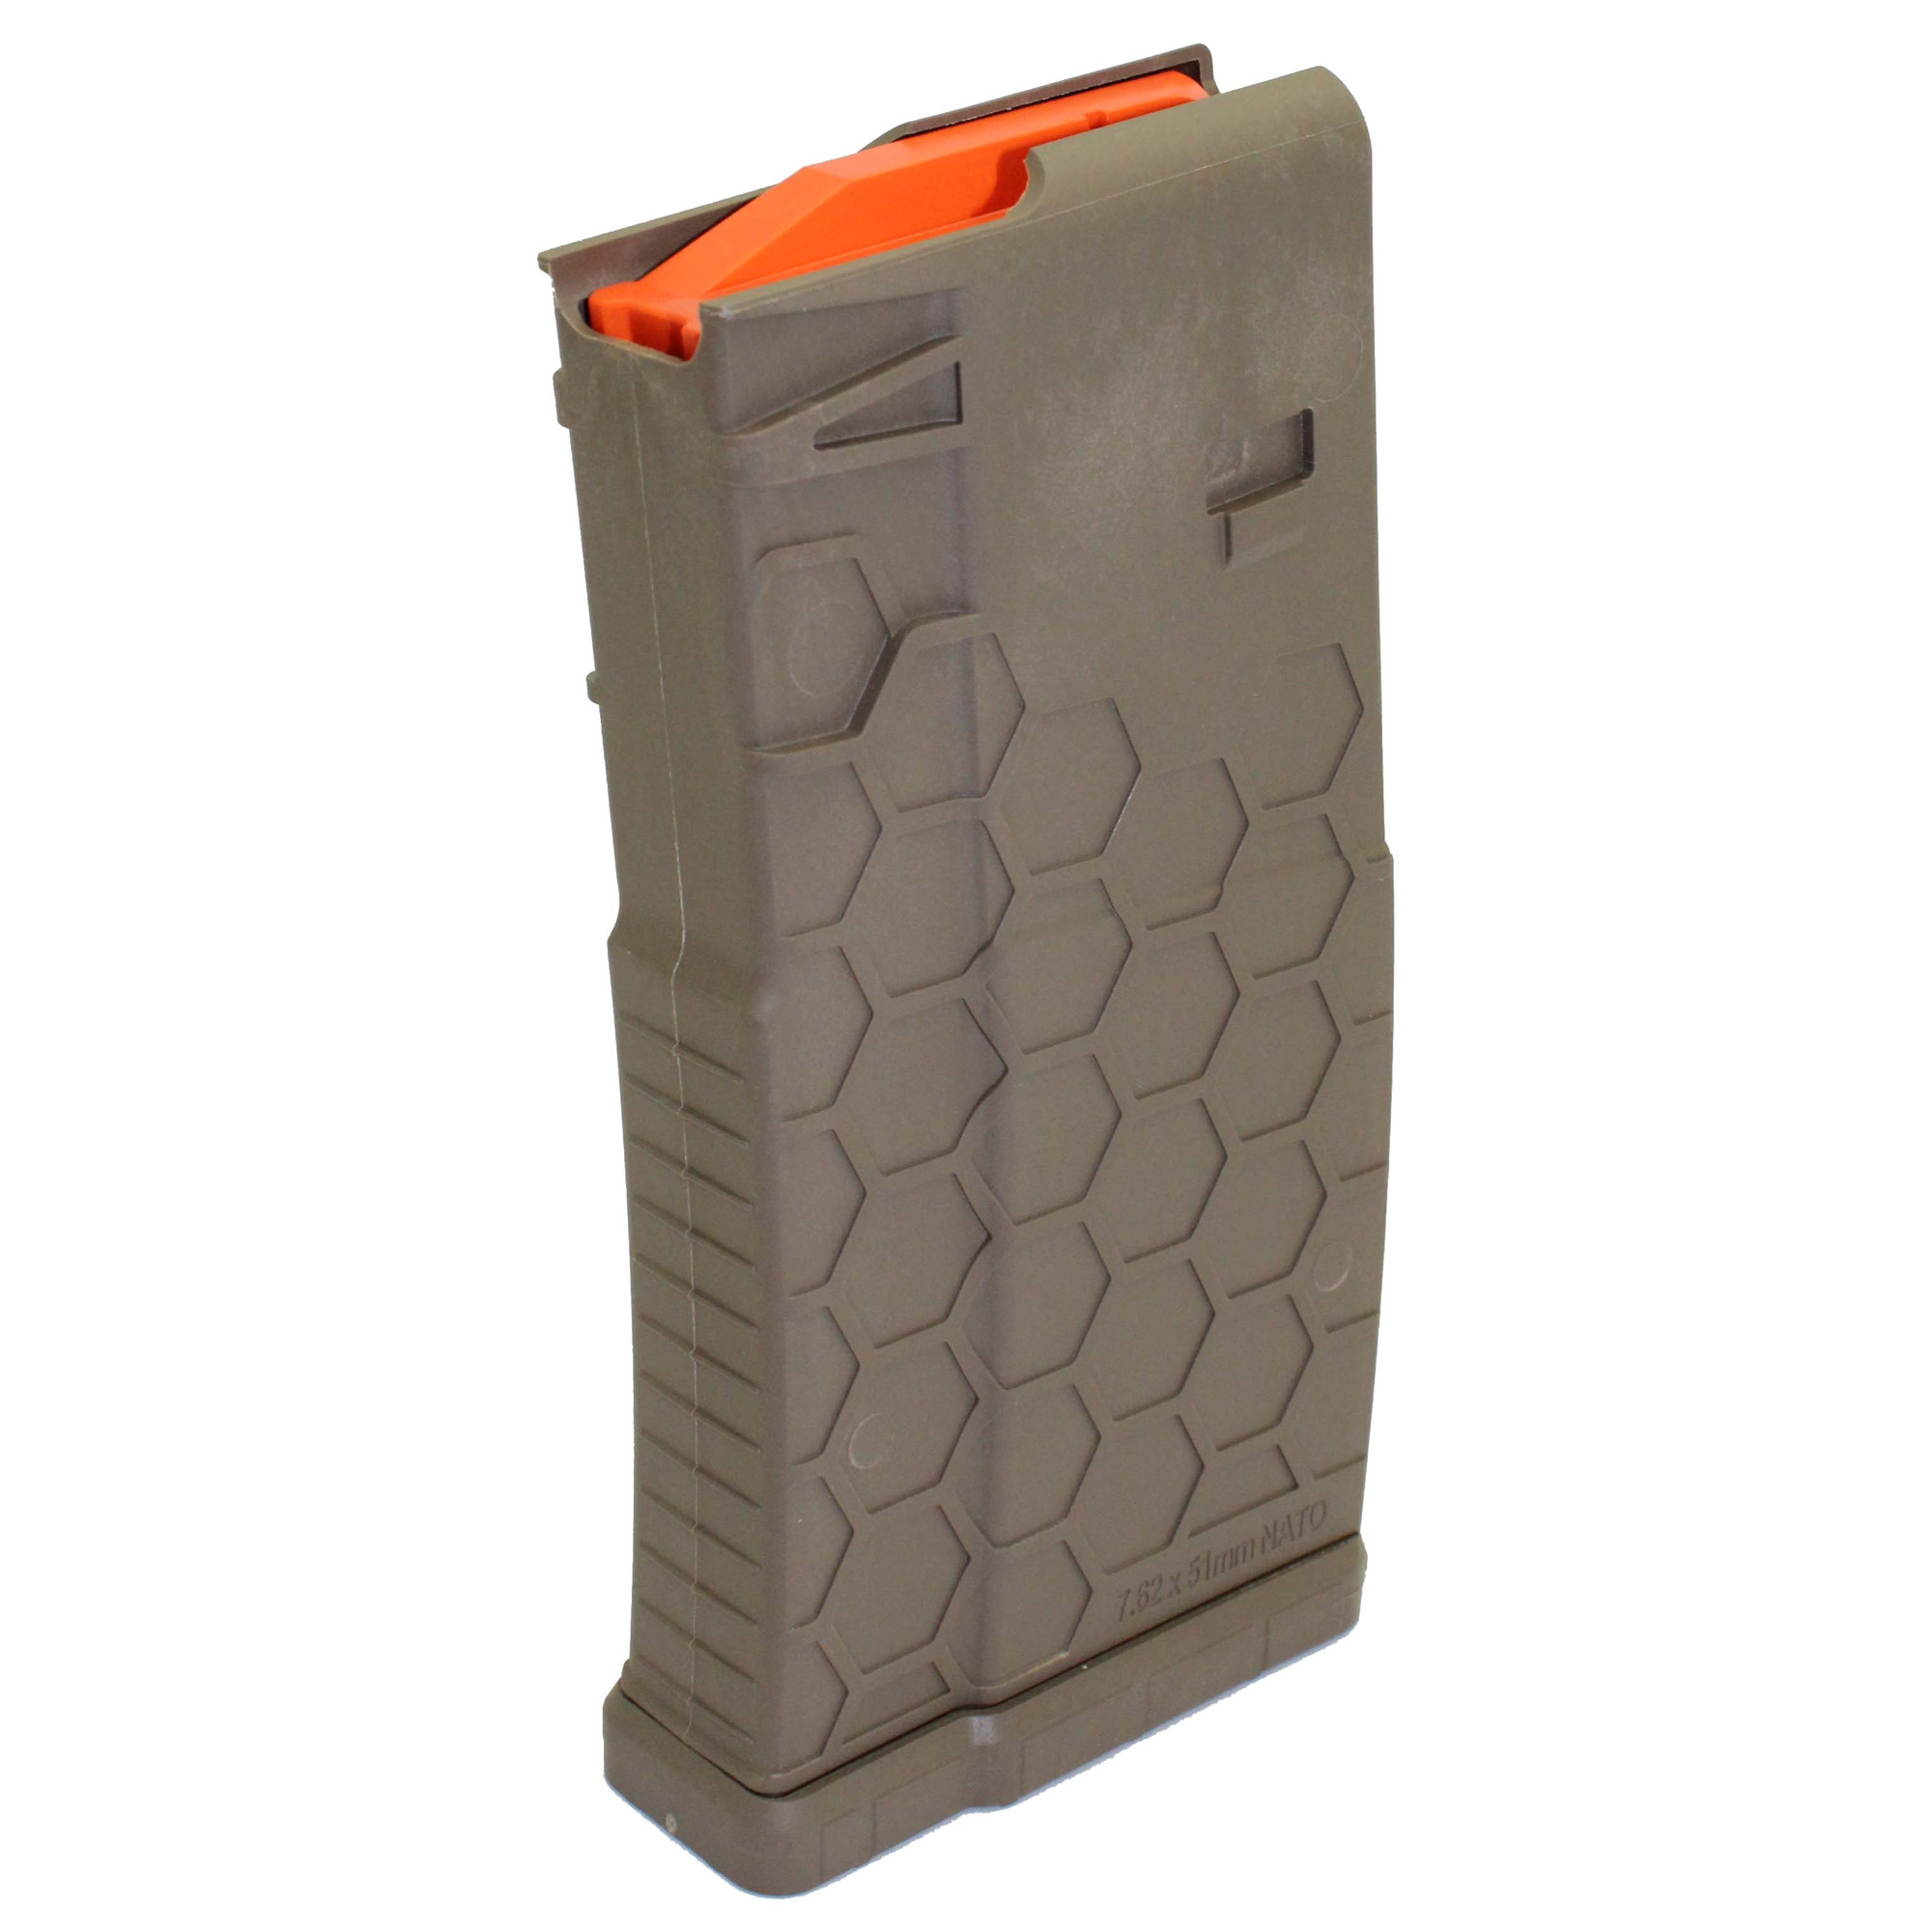 """Whether you're on the hunt or engaging a long-range target"""" you need a heavy-duty caliber that delivers power and precision"""" and When Every Round Counts"""" you can trust the SENTRY's Hexmag AR10/.308 SR25 magazine. These rugged magazines are constructed with SENTRY's iconic Hexture design pattern for durability"""" dependability and exceptional performance."""